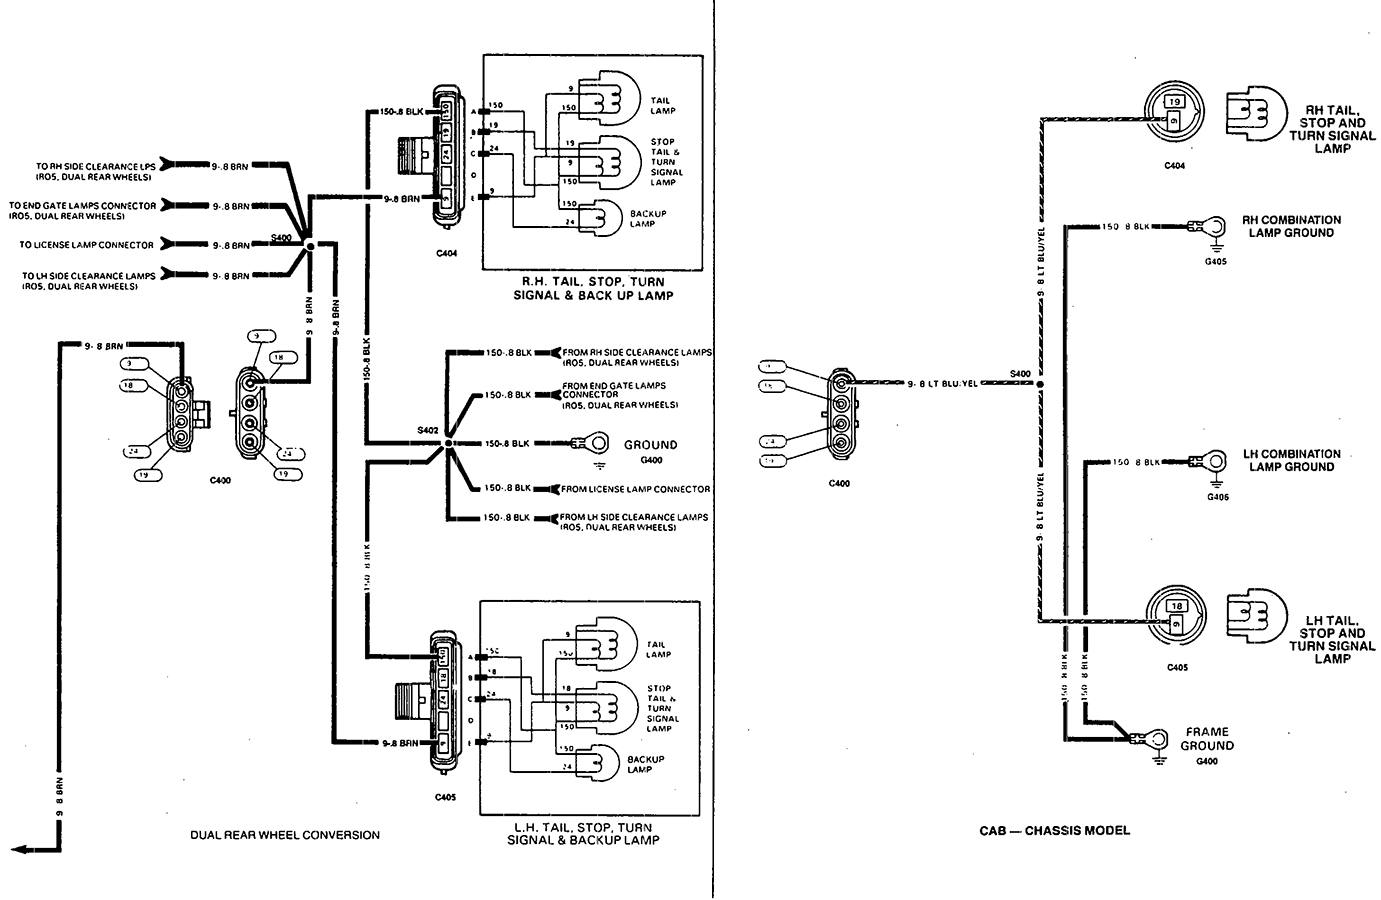 1997 Chevy Tail Light Wiring Diagram   Manual E-Books - Tail Light Wiring Diagram